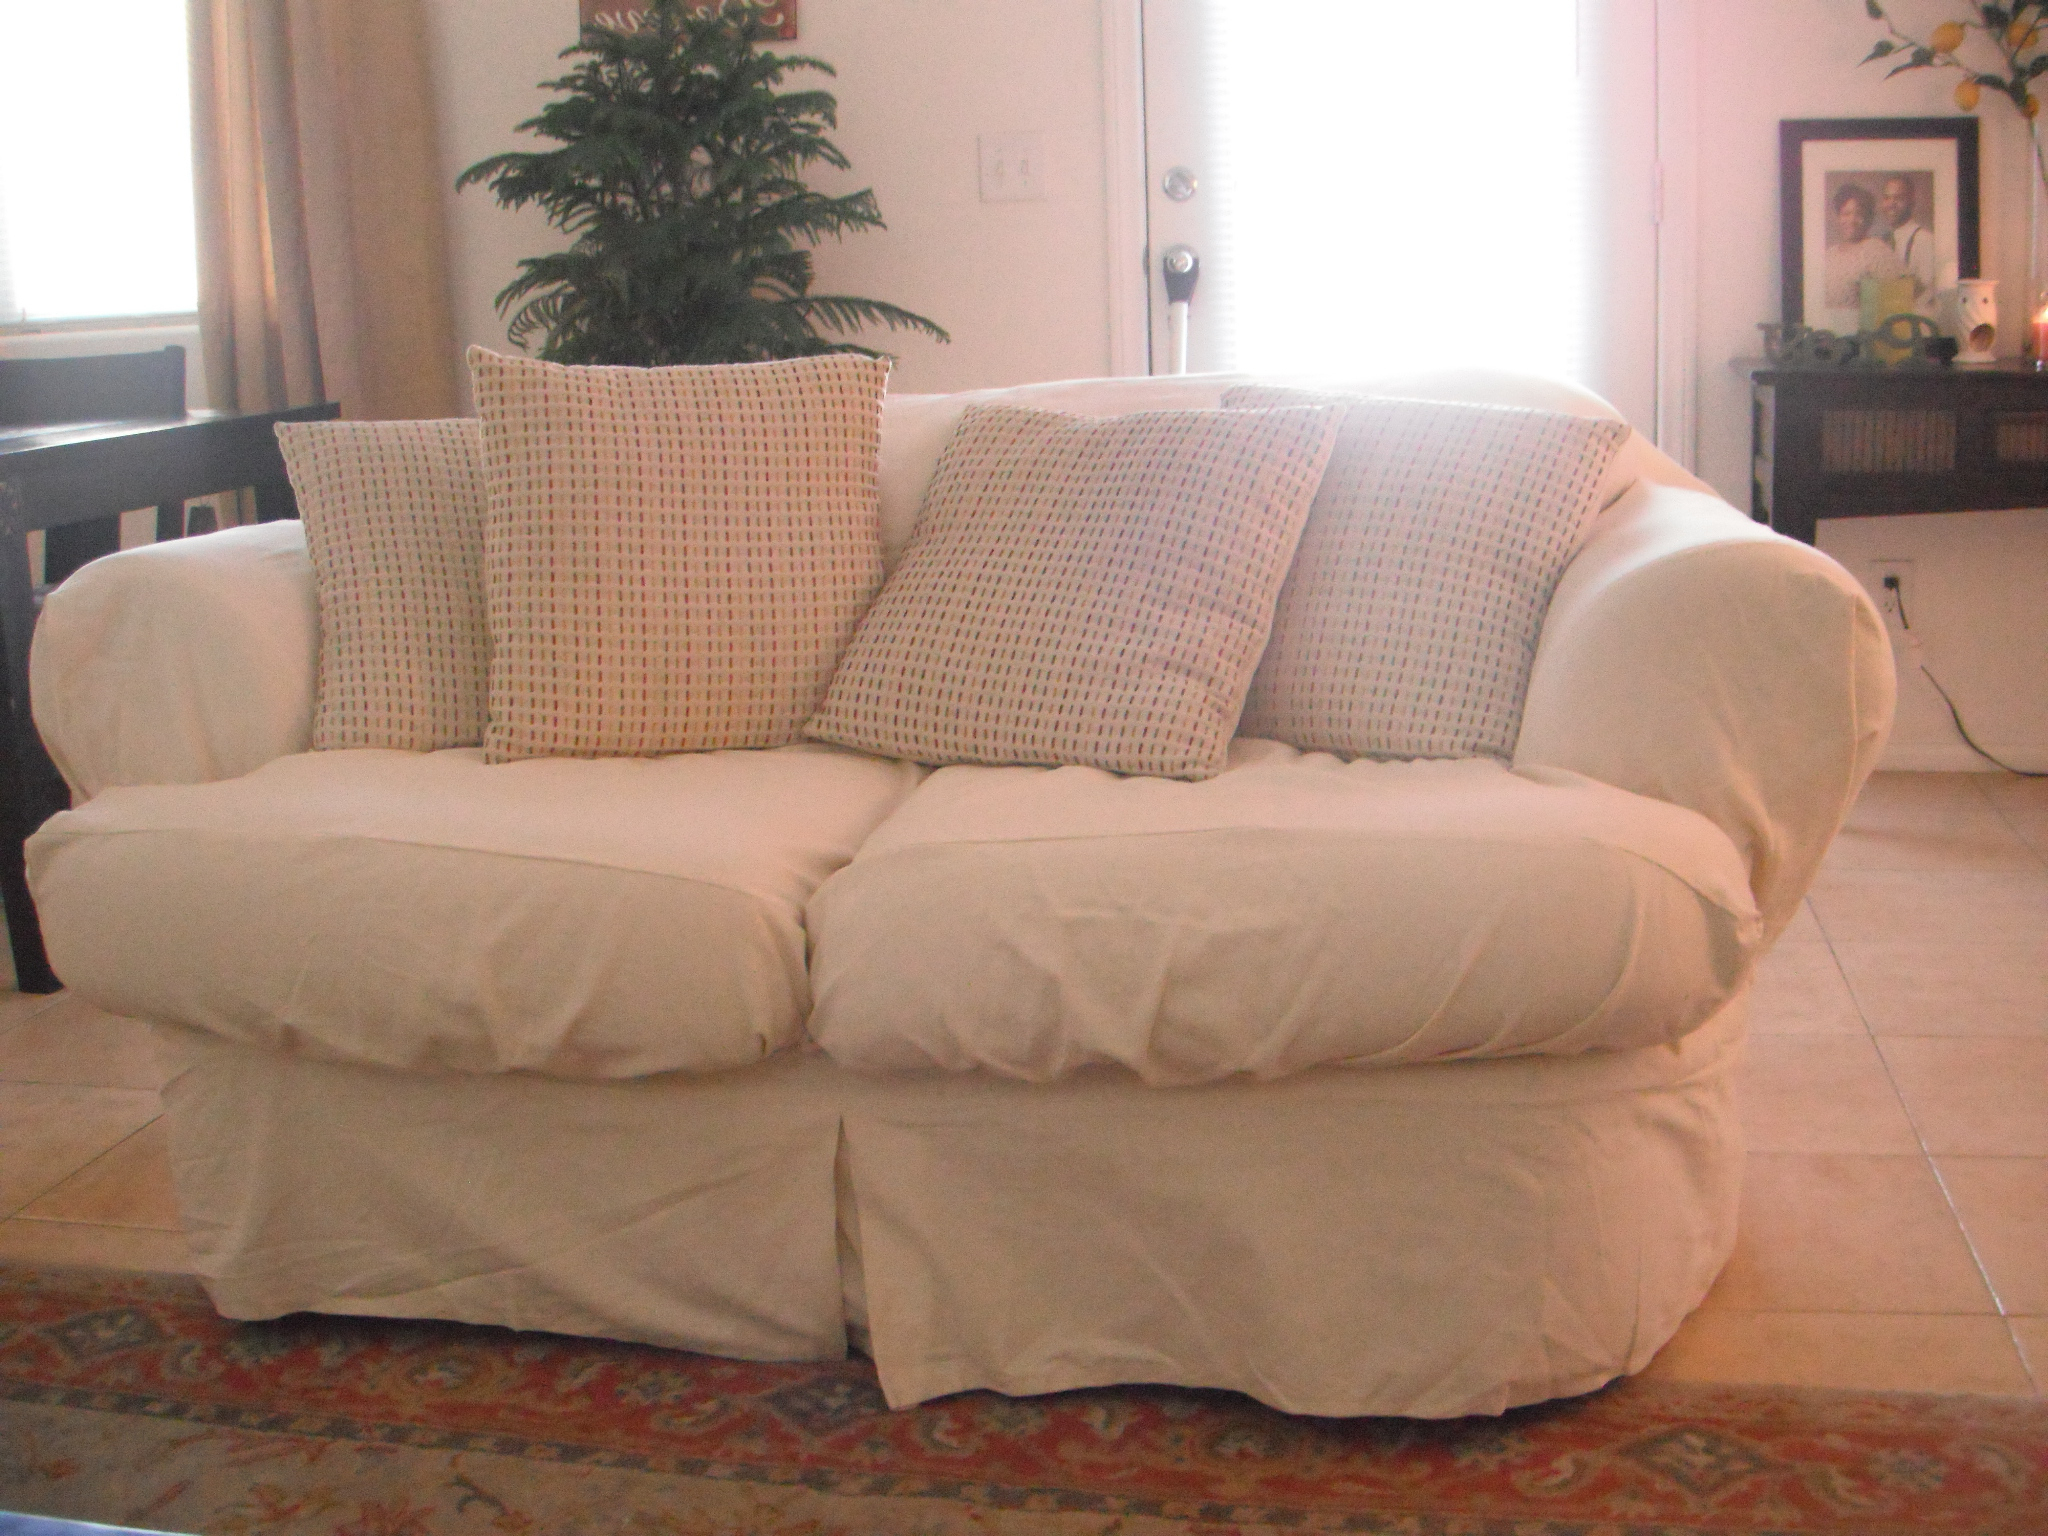 Well Known Slipcovers For Leather Couches Patio Chair How To Cover A Sofa With Within Sofa And Chair Slipcovers (View 19 of 20)